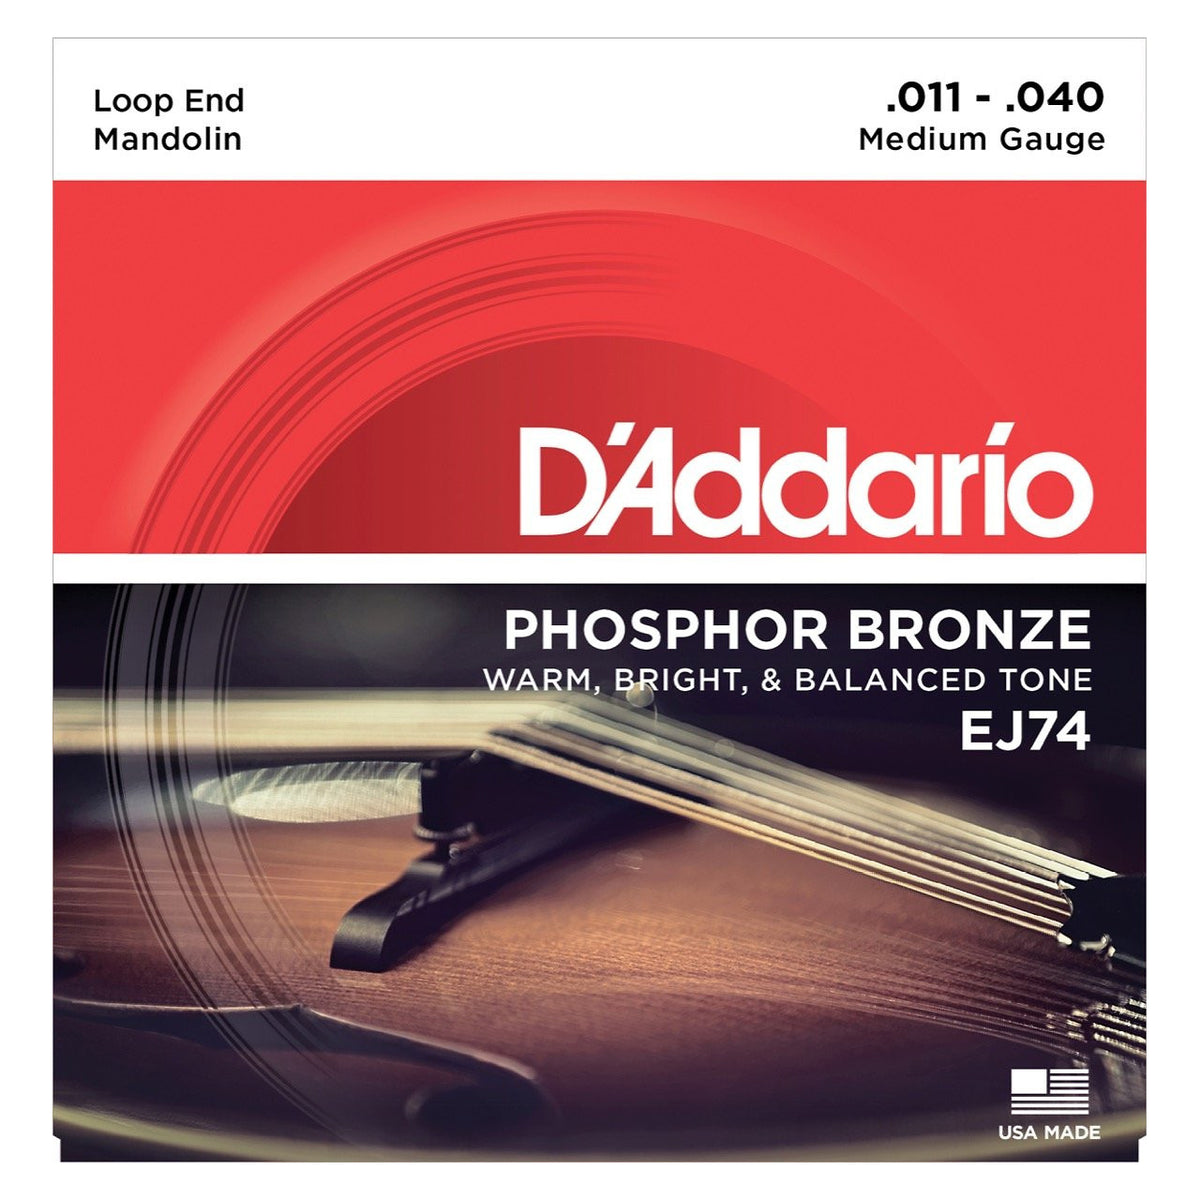 D'Addario J74 Phosphor Bronze Mandolin Strings